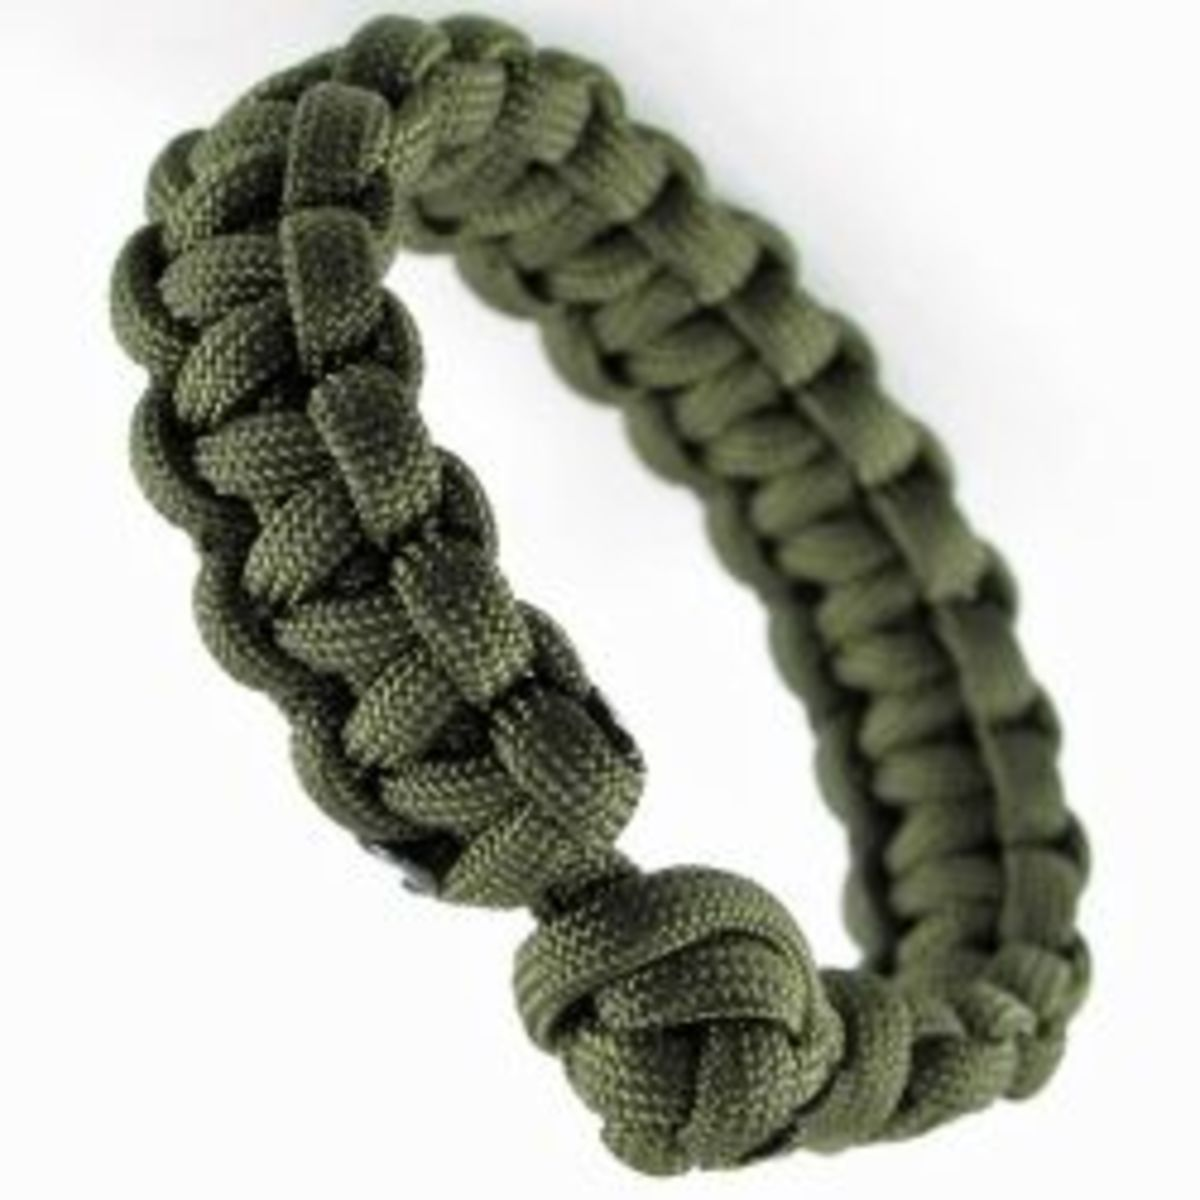 How to Make a Paracord Bracelet in Two Easy Steps